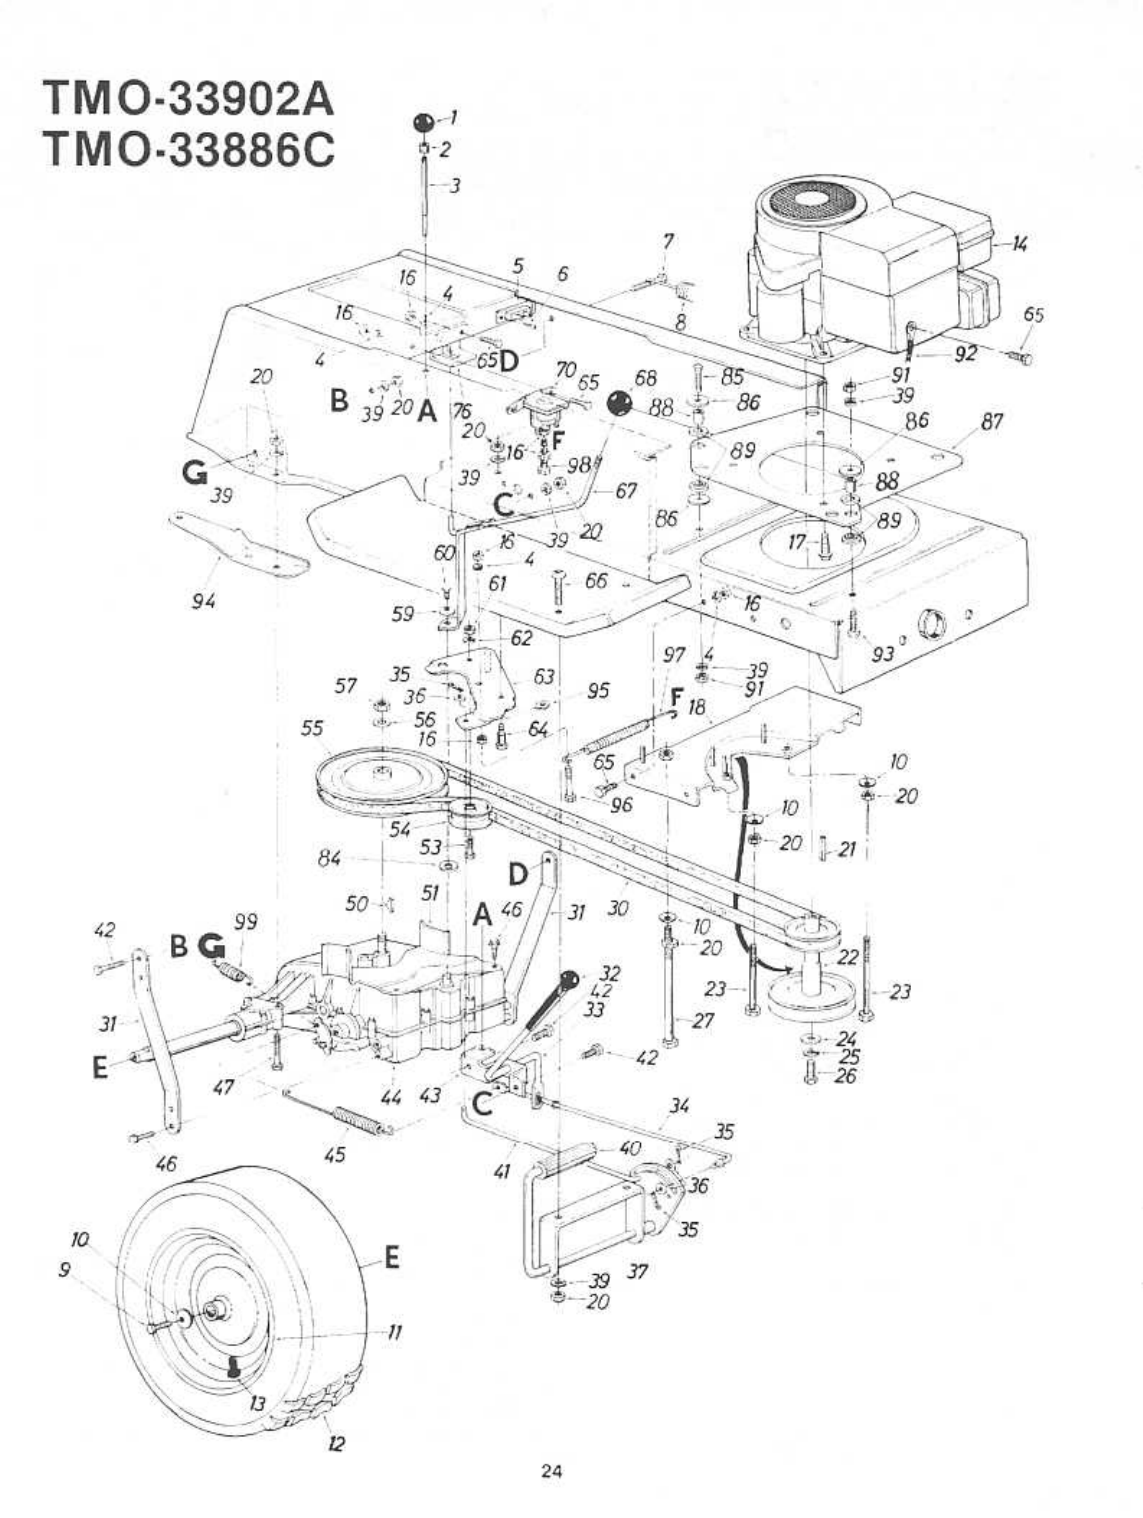 Page 20 of Montgomery Ward Lawn Mower TMO-33902A User